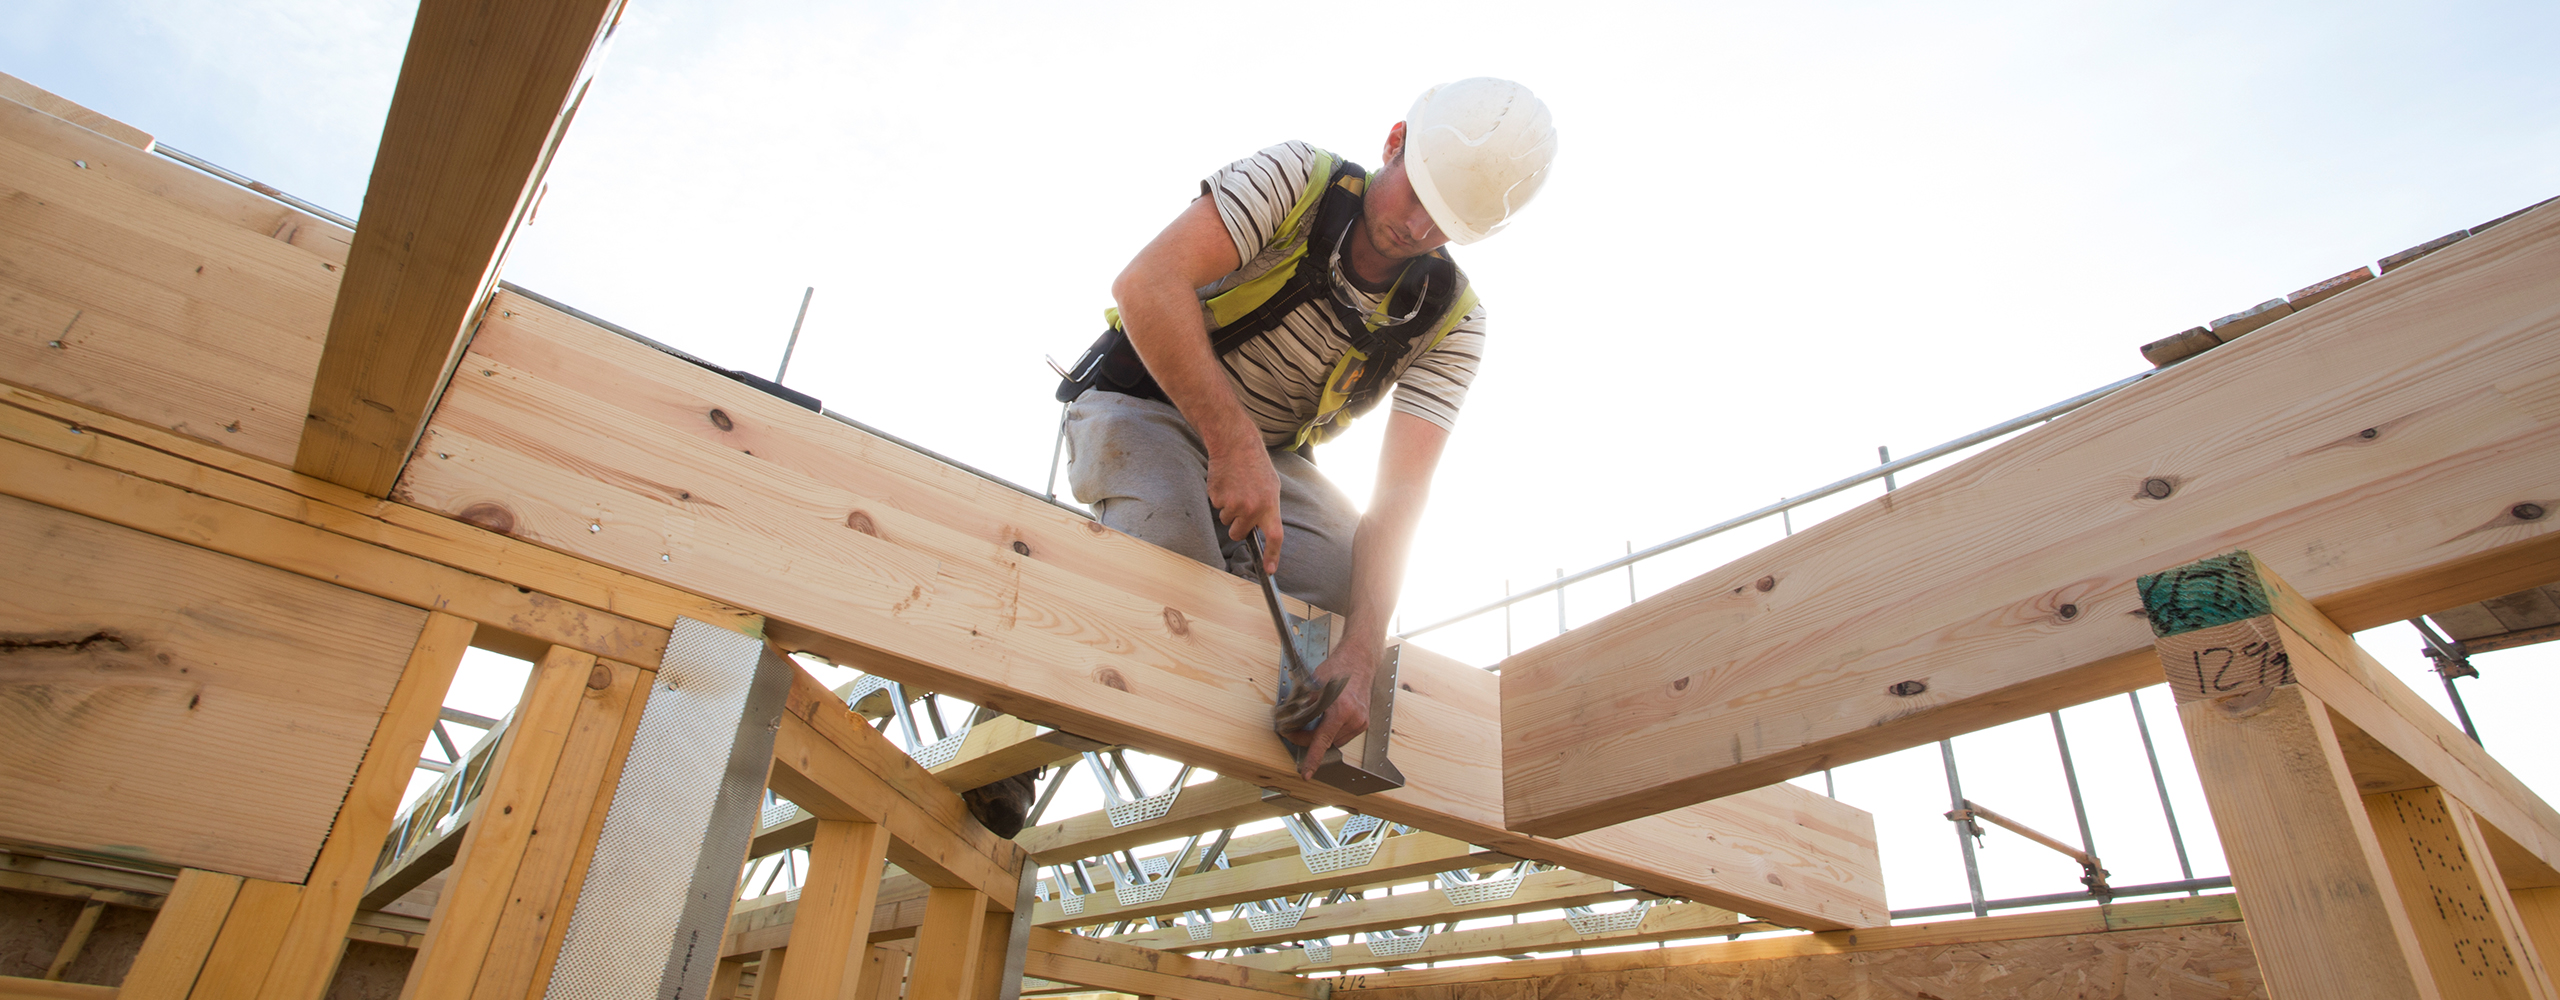 person working on building framing